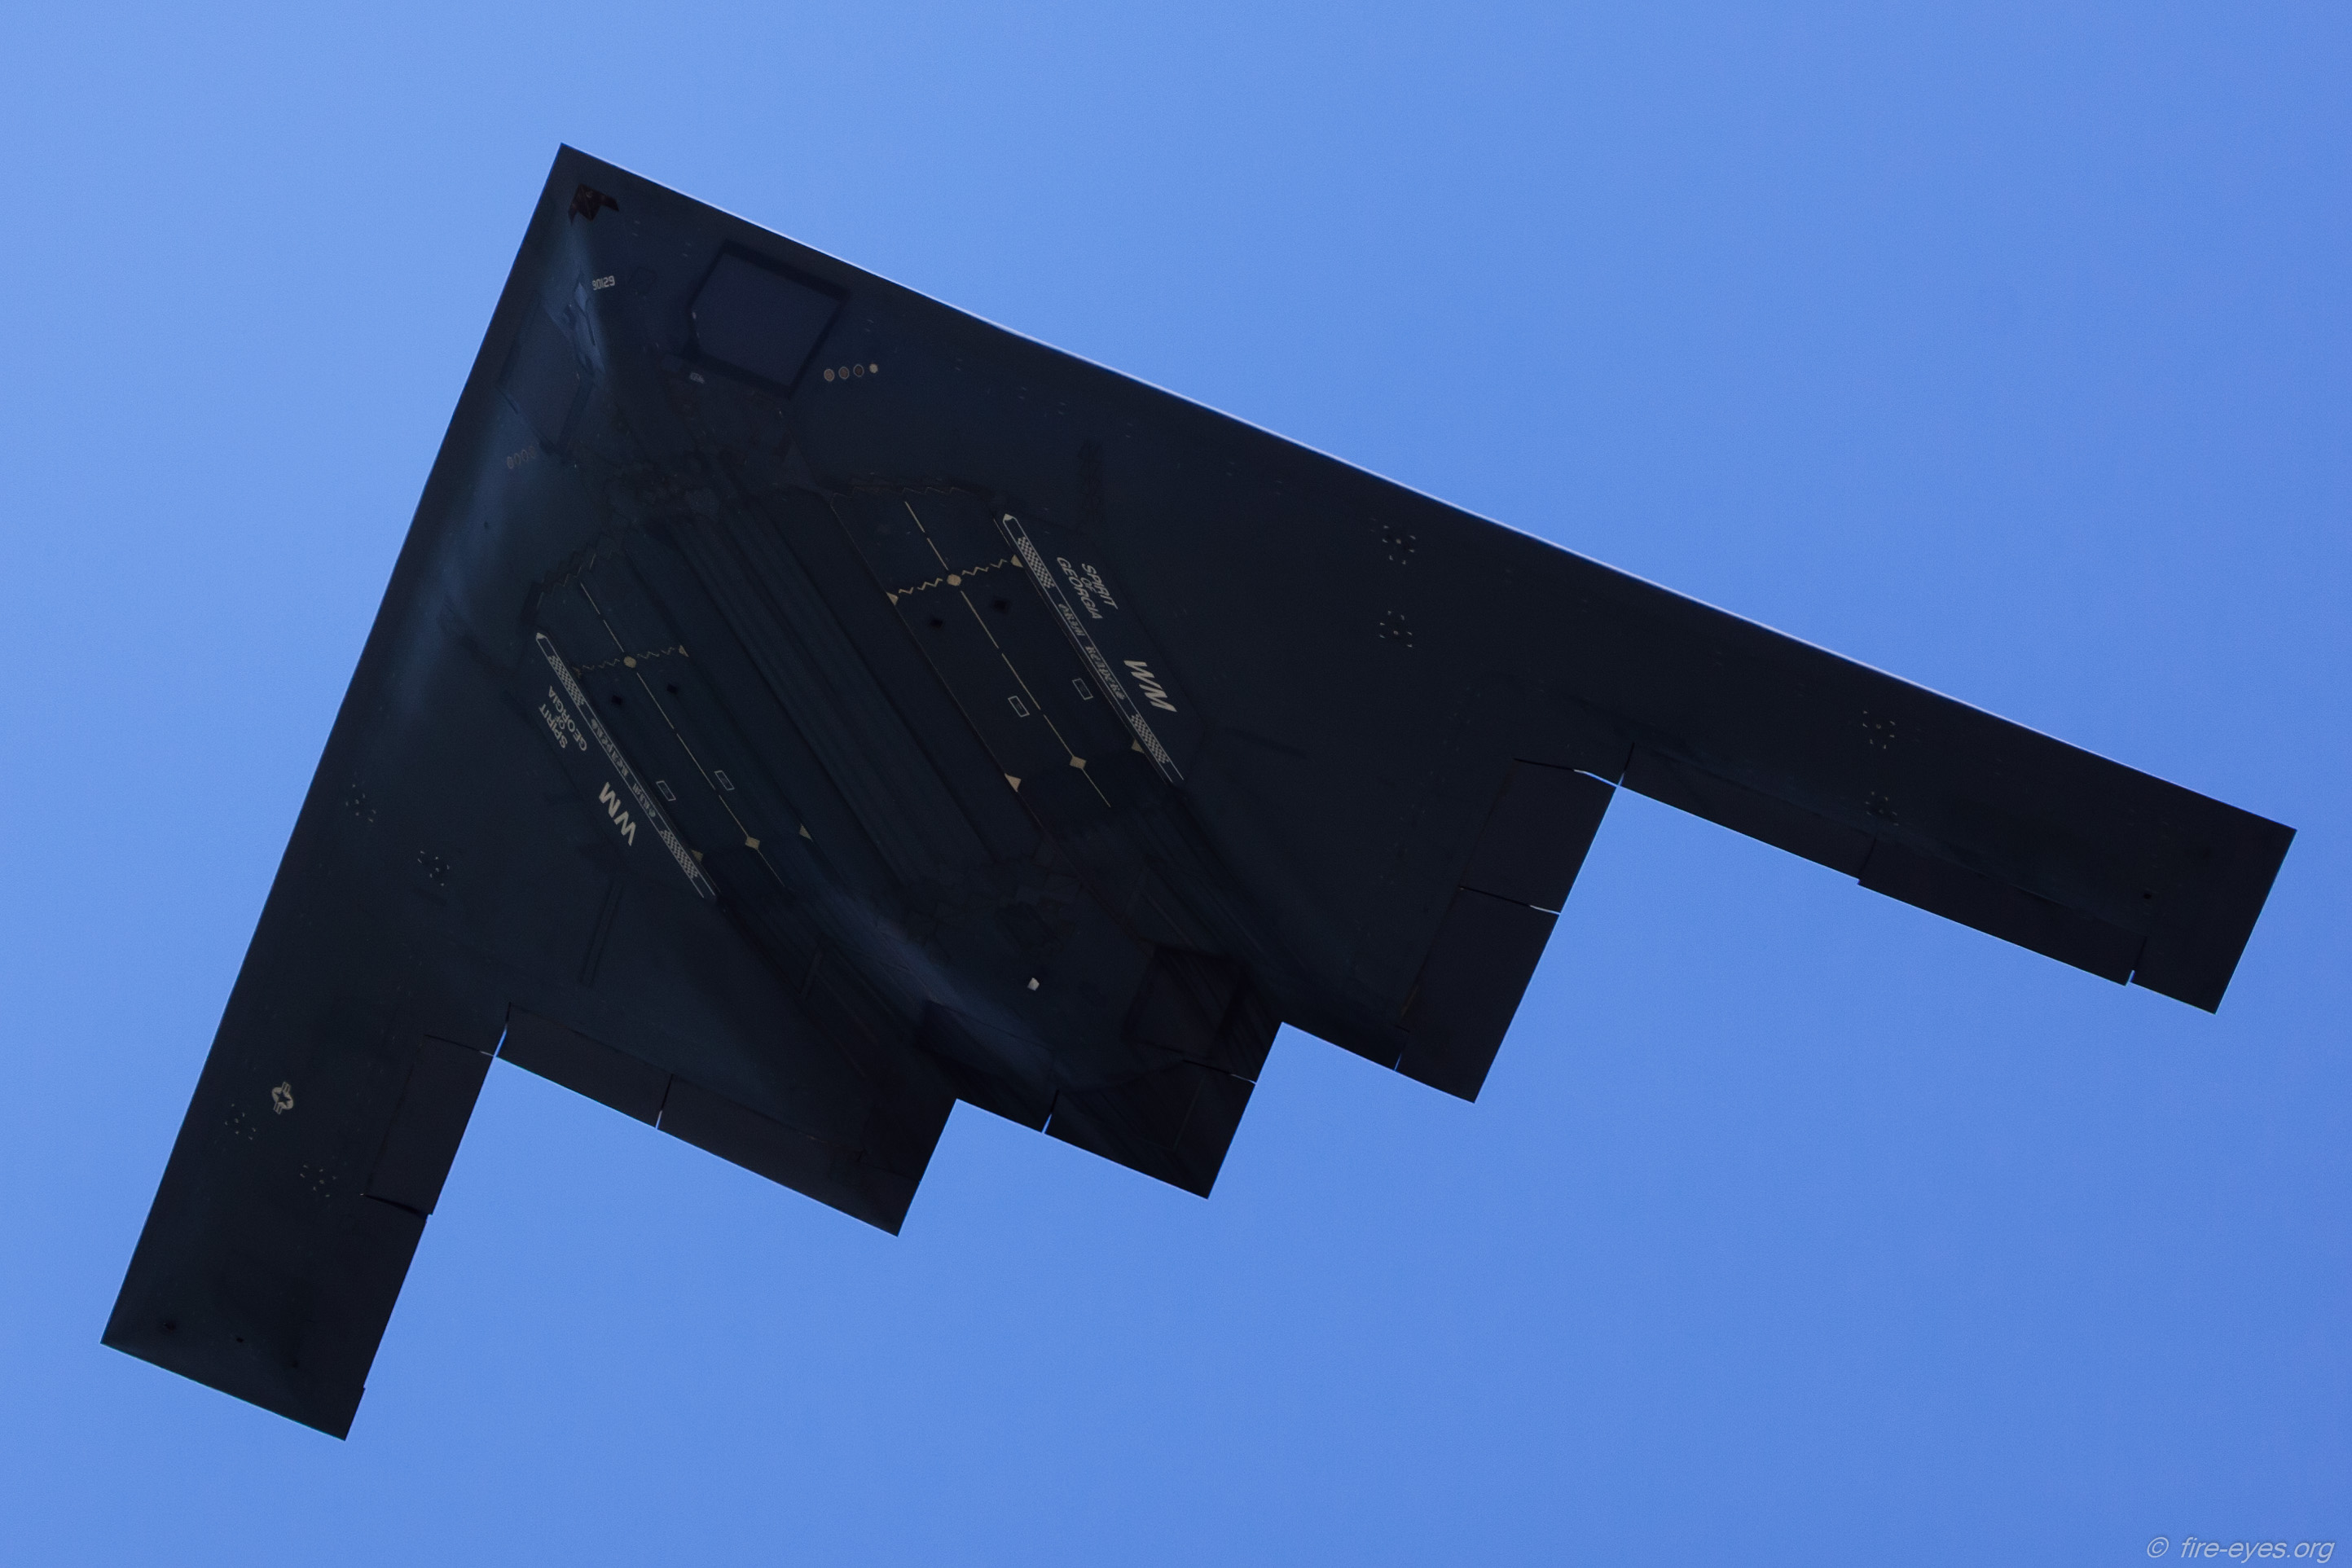 Stealth Paint To Make Airplane Invisible